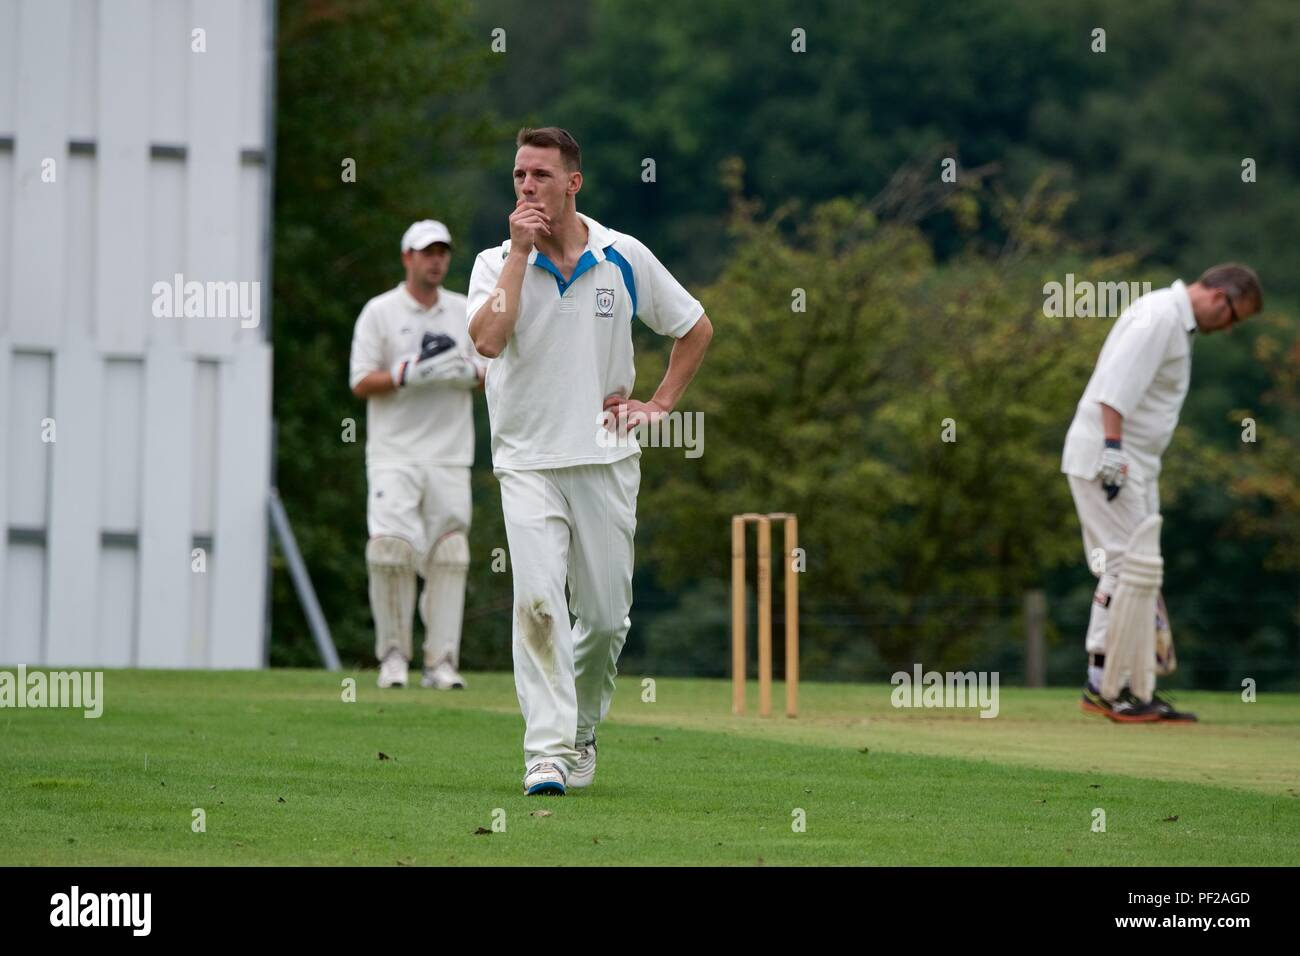 A bowler prepares himself mentally before bowling in a match between Chalesworth and Chisworth second eleven and Pott Shrigley second eleven. - Stock Image